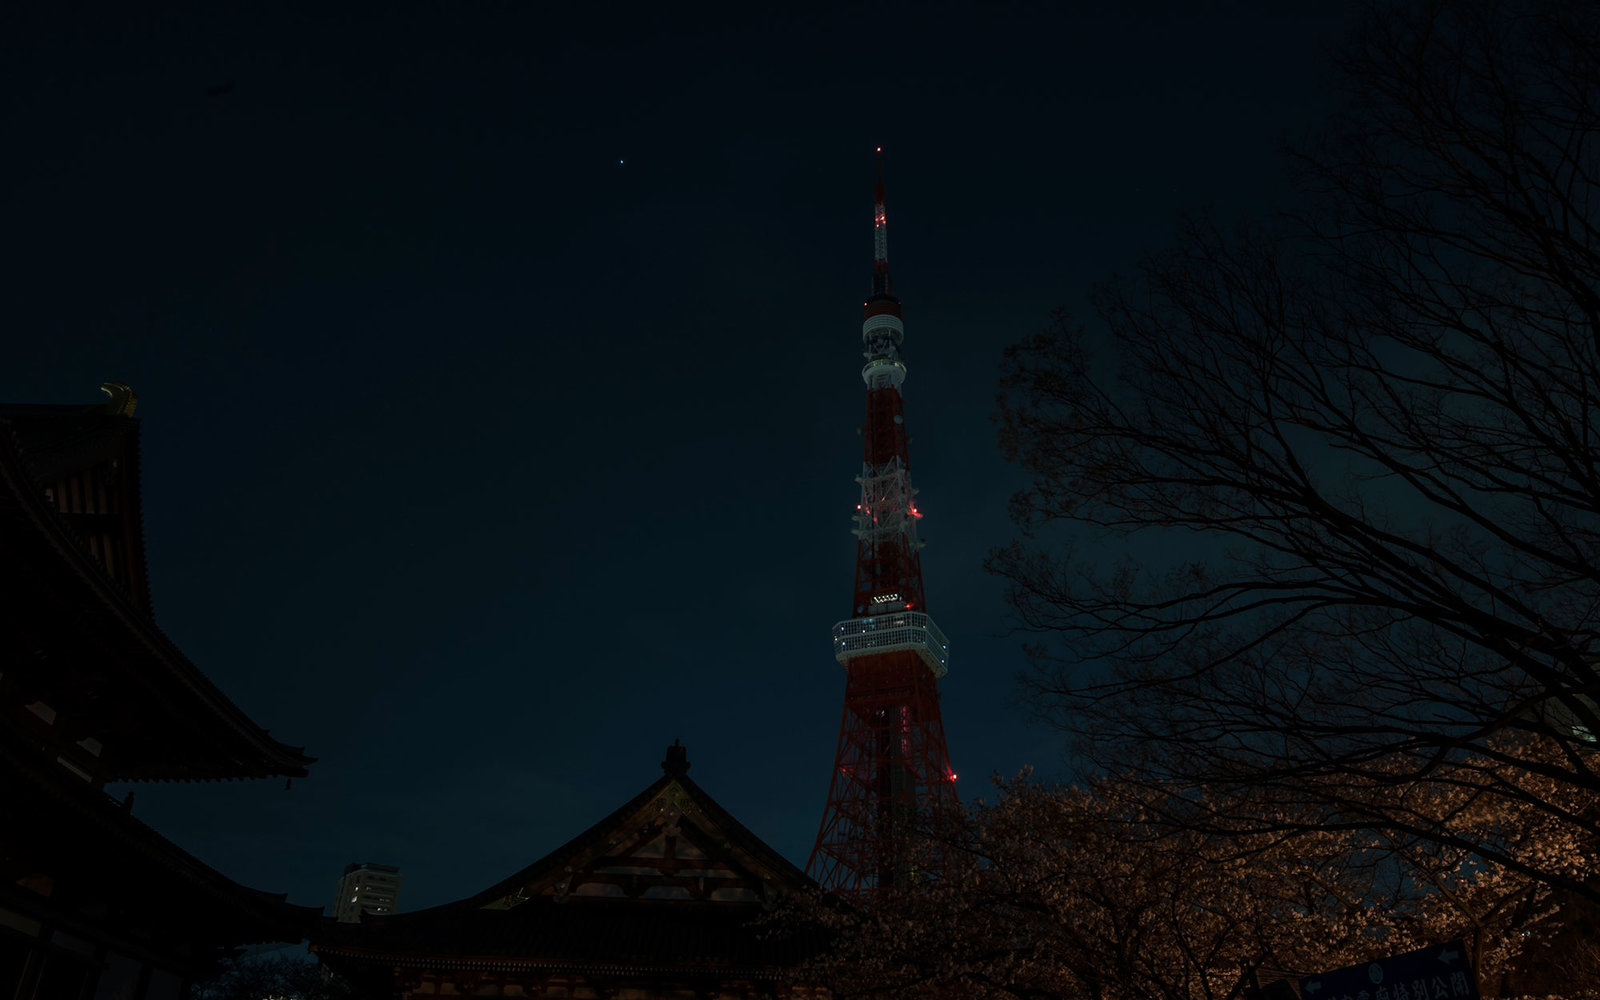 TOKYO, JAPAN - MARCH 29:  Tokyo Tower is seen after the lights were switched off to recognize Earth Hour on March 29, 2014 in Tokyo, Japan. Millions of people around the world switch off lights in homes, offices and landmarks at 8.30pm local time for an h